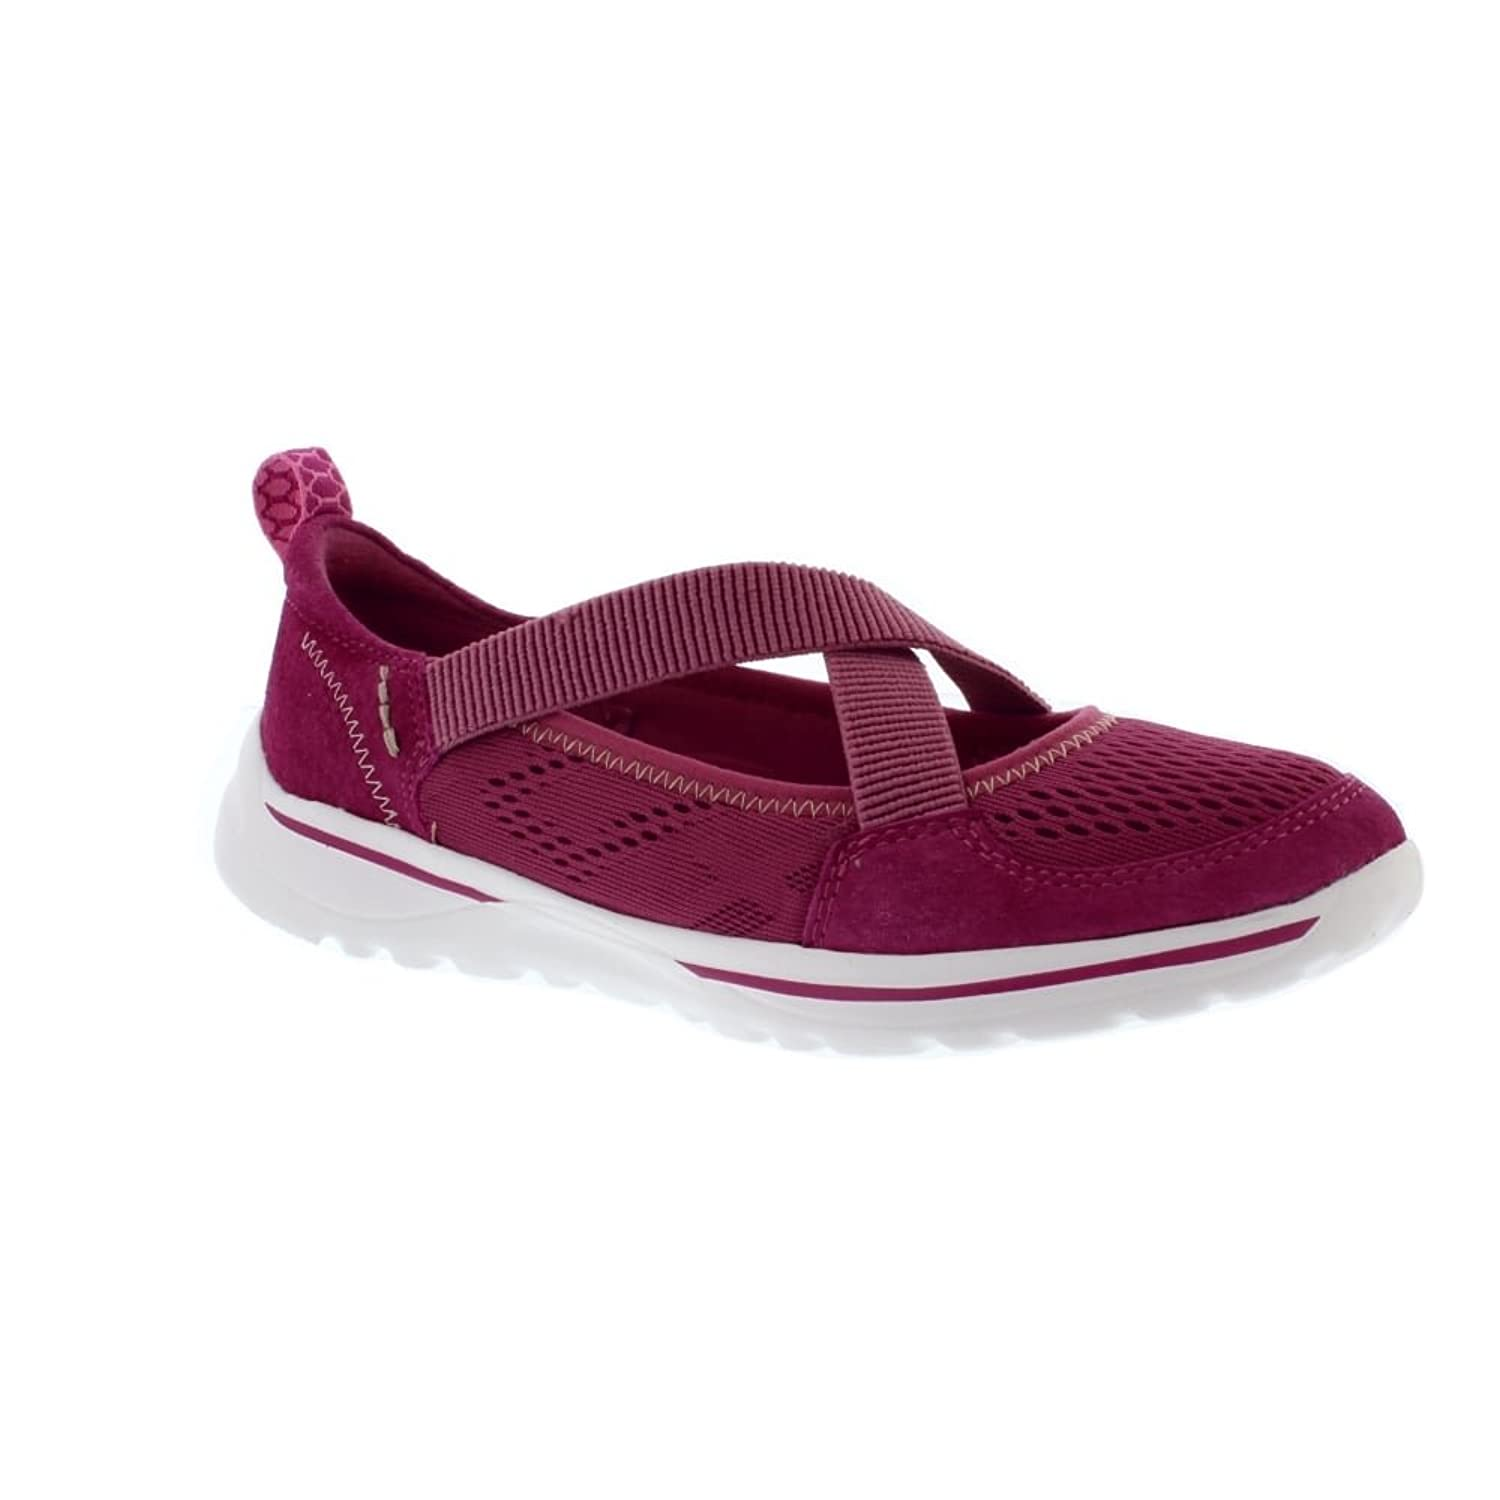 San Jose - Red Plum (Pink) Womens Shoes